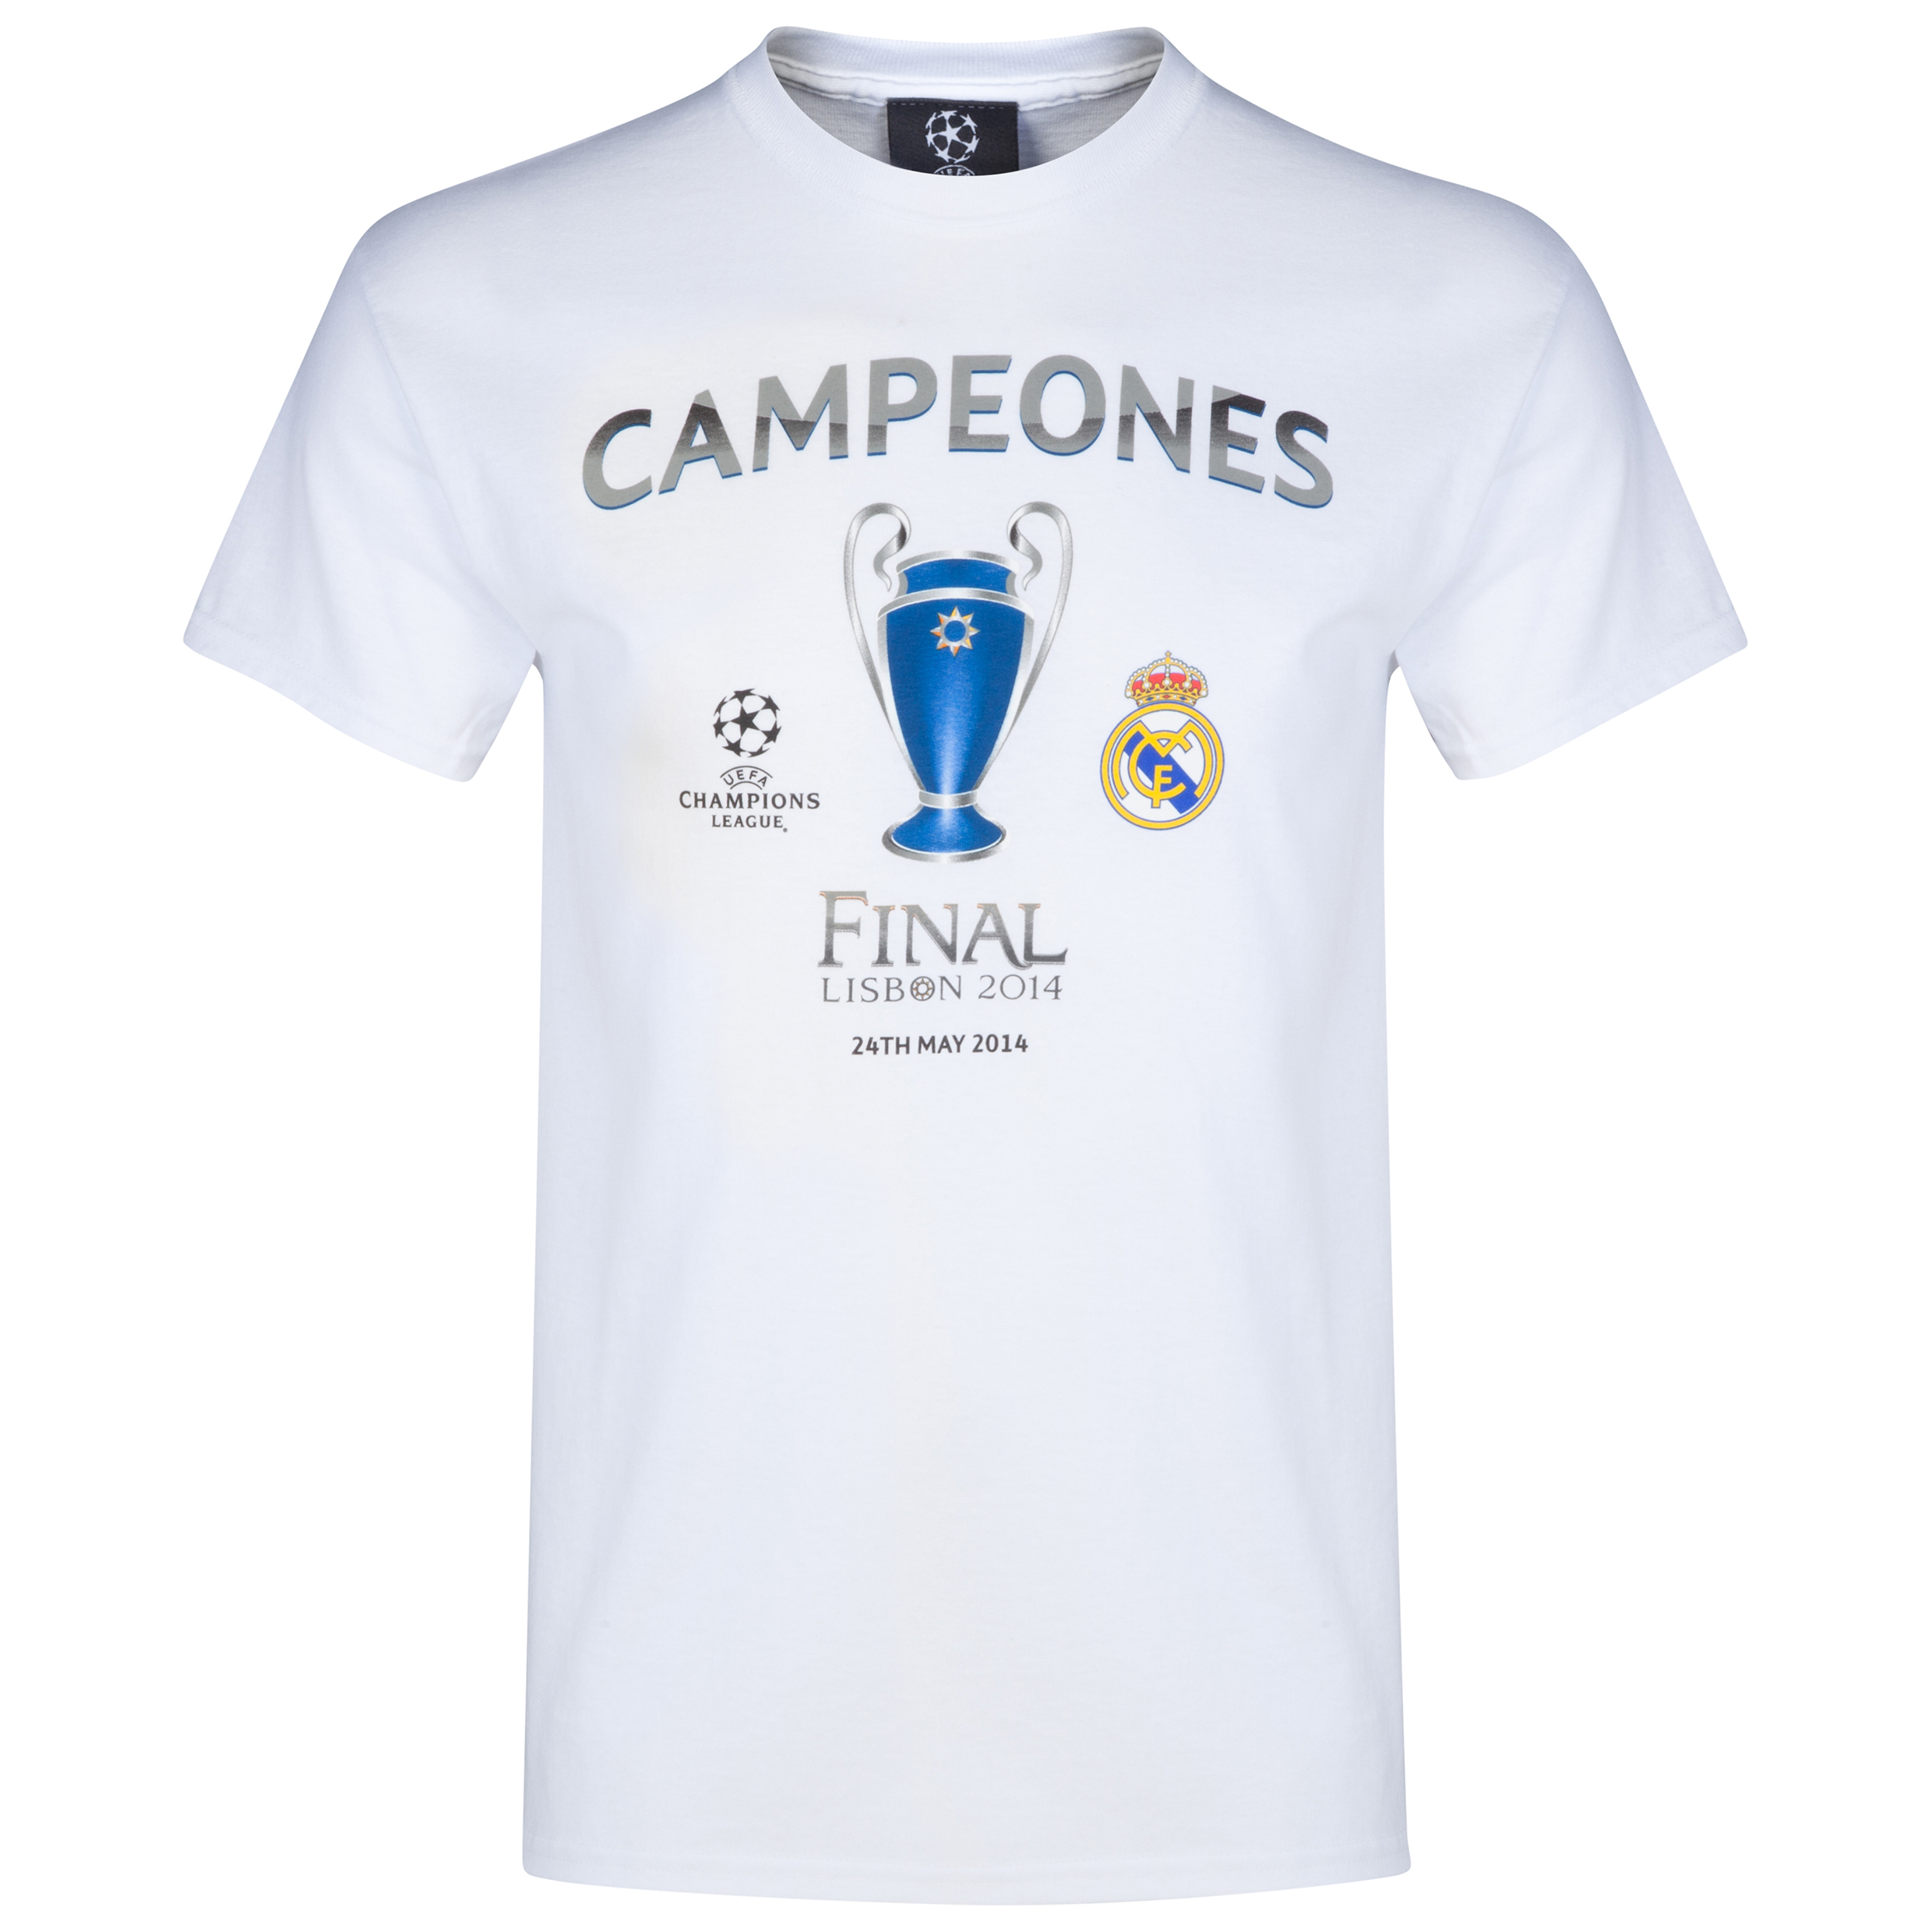 Real Madrid UCL Winners 2014 Campeones T-Shirt - White